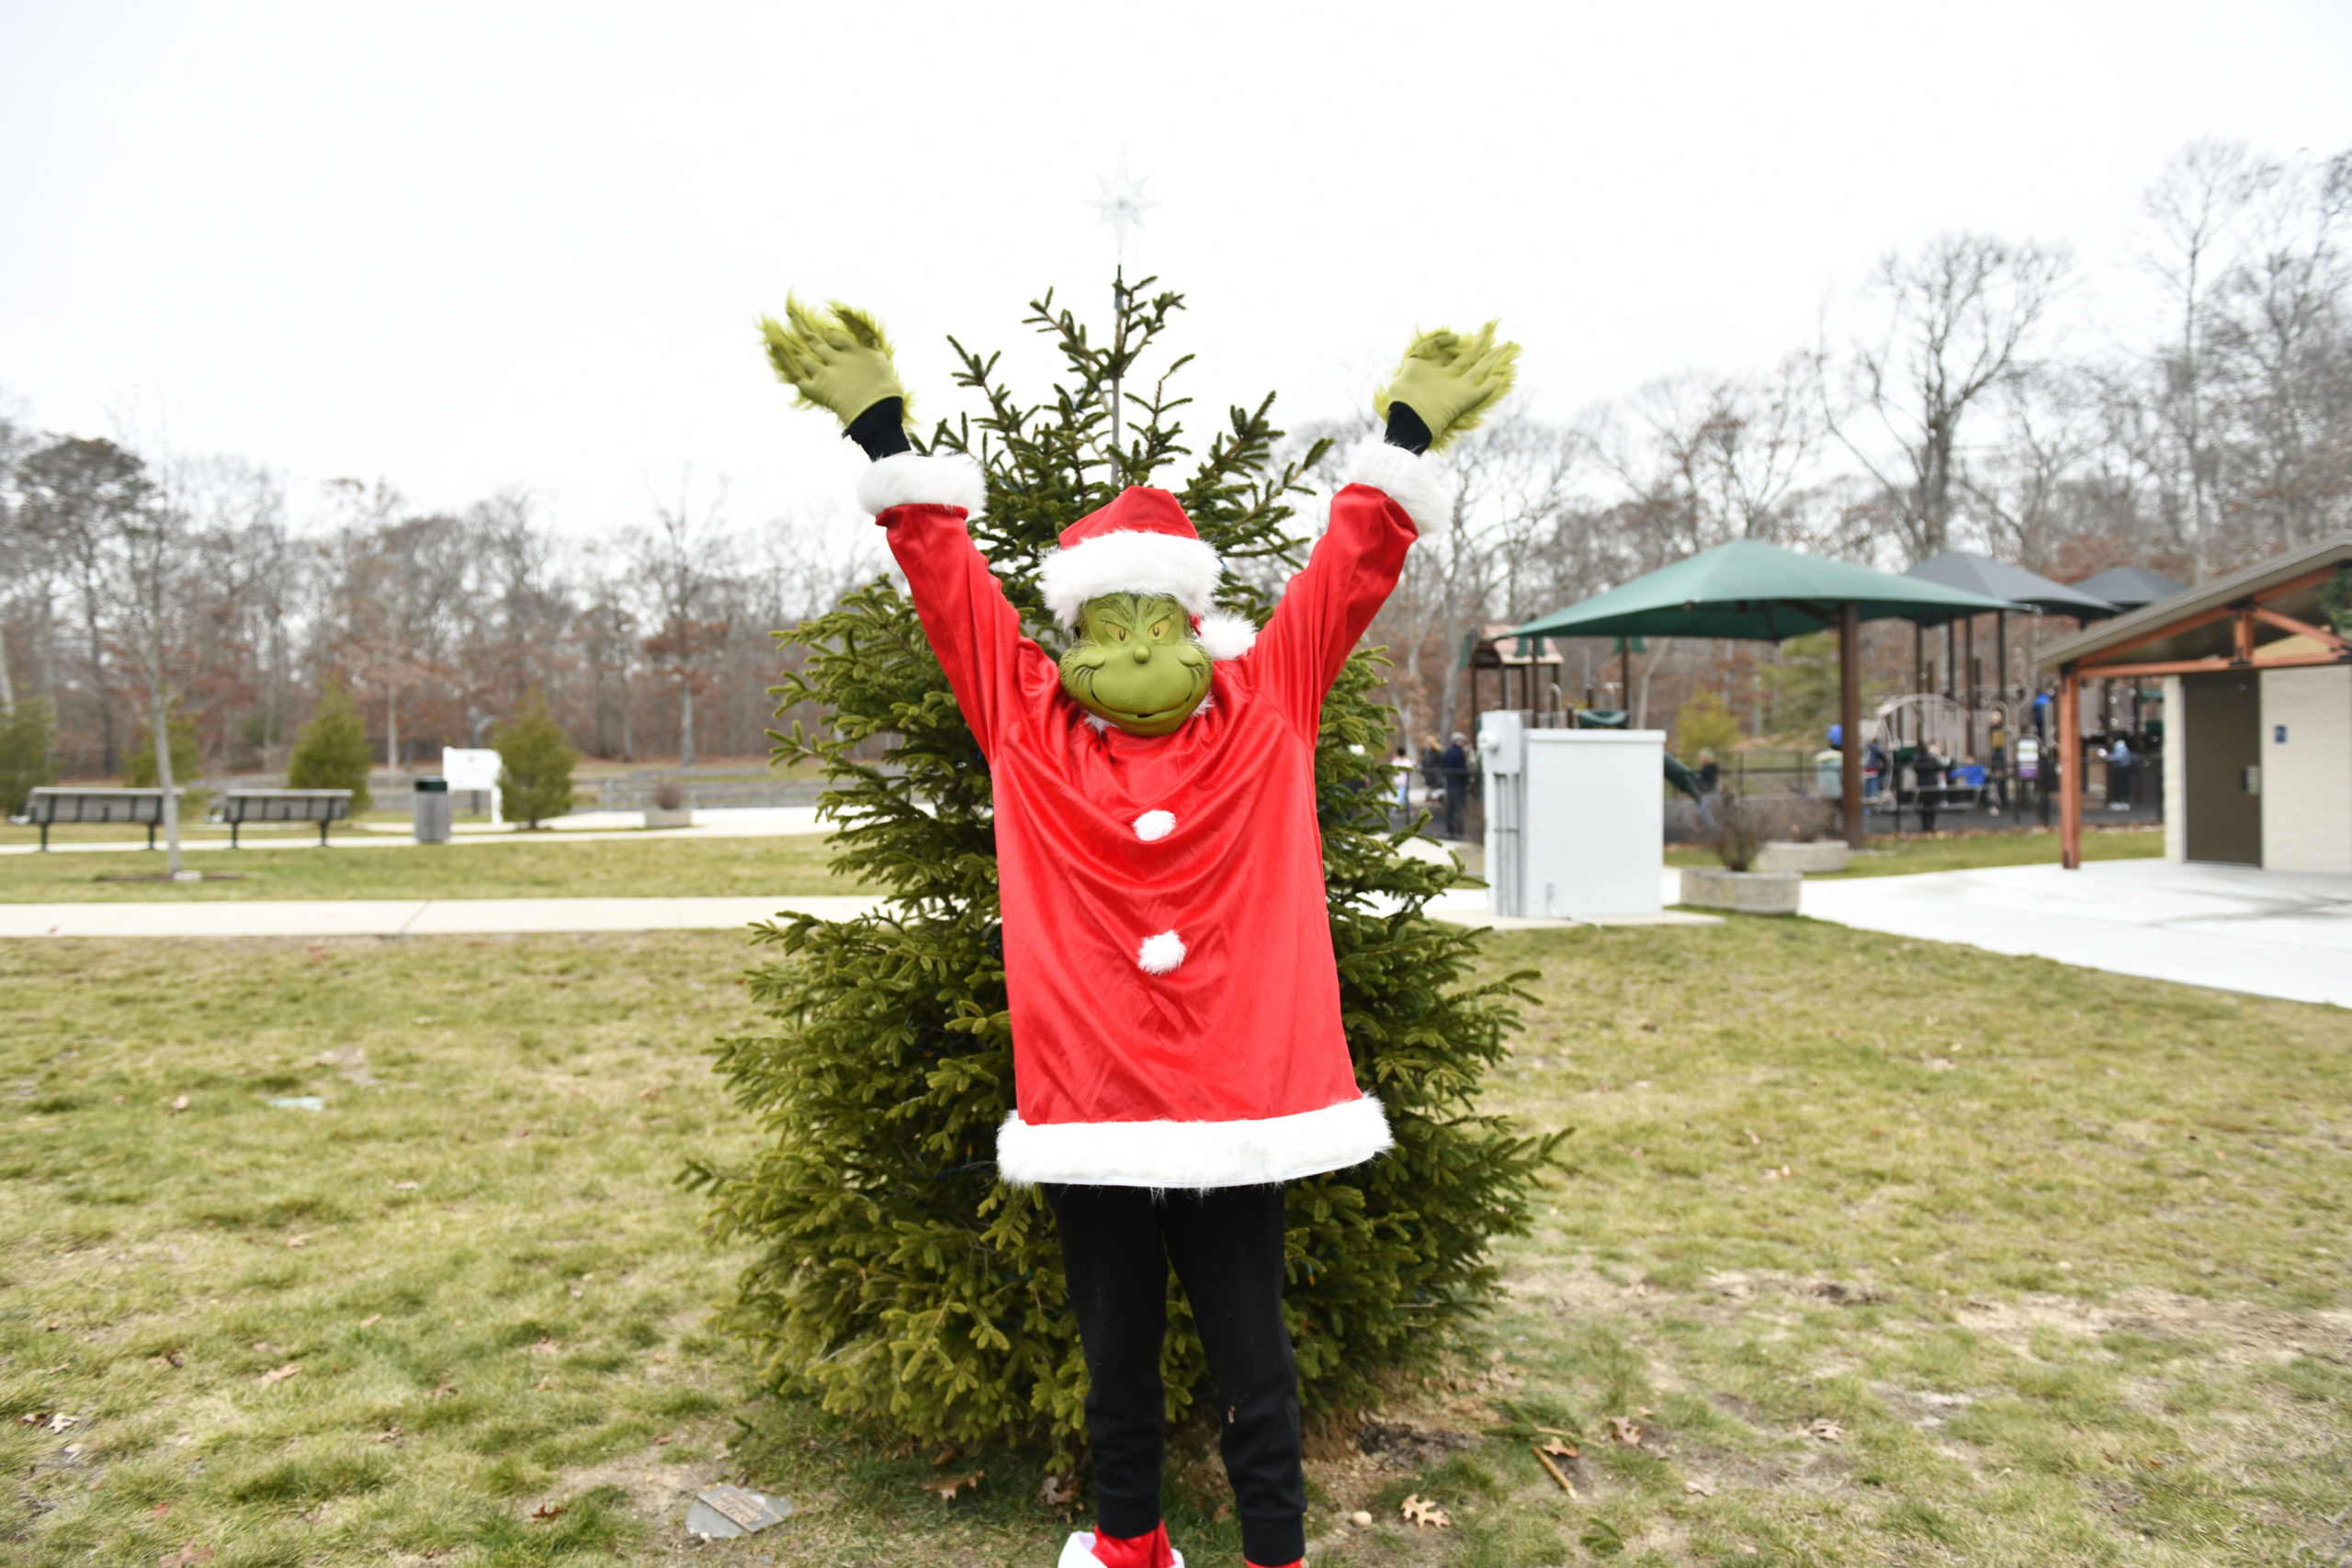 Festivities were cut short due to the rain but that didn't stop the Grinch, the Dickens Carolers and visitors from singing a quick carol and lighting the tree at Good Ground park in Hampton Bays on Friday.  DANA SHAW